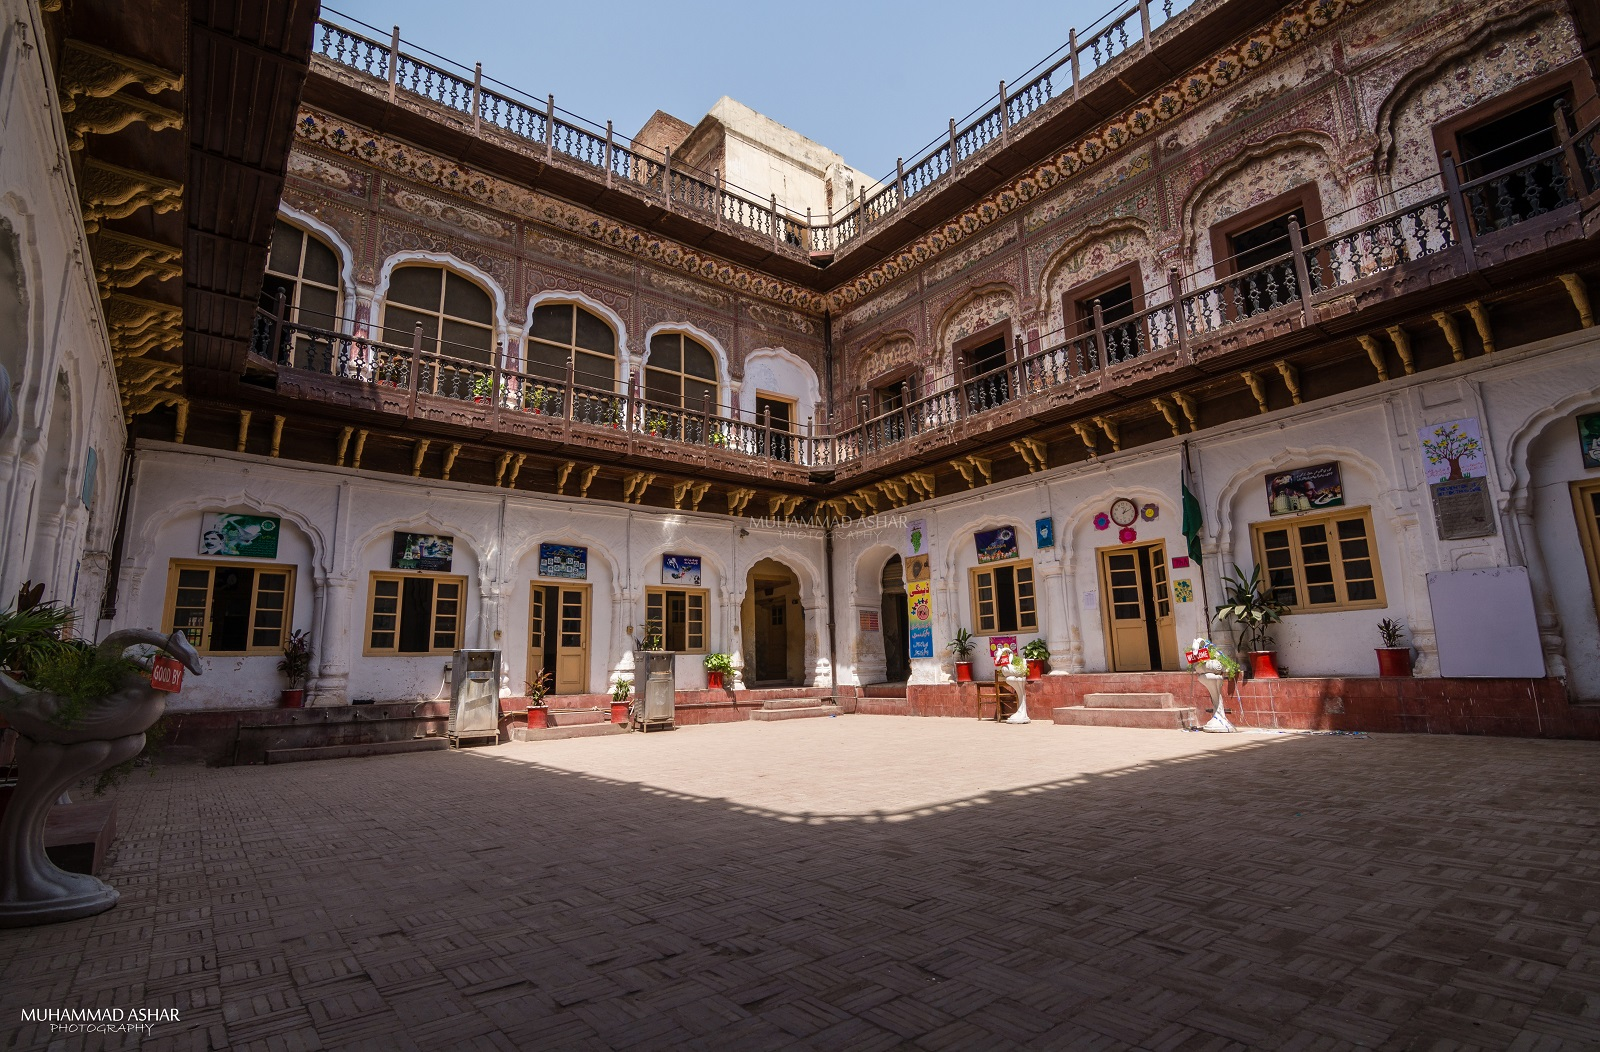 Haveli Nau Nihal Singh - Now Victoria Girls High School, its like to get taught with heritage.